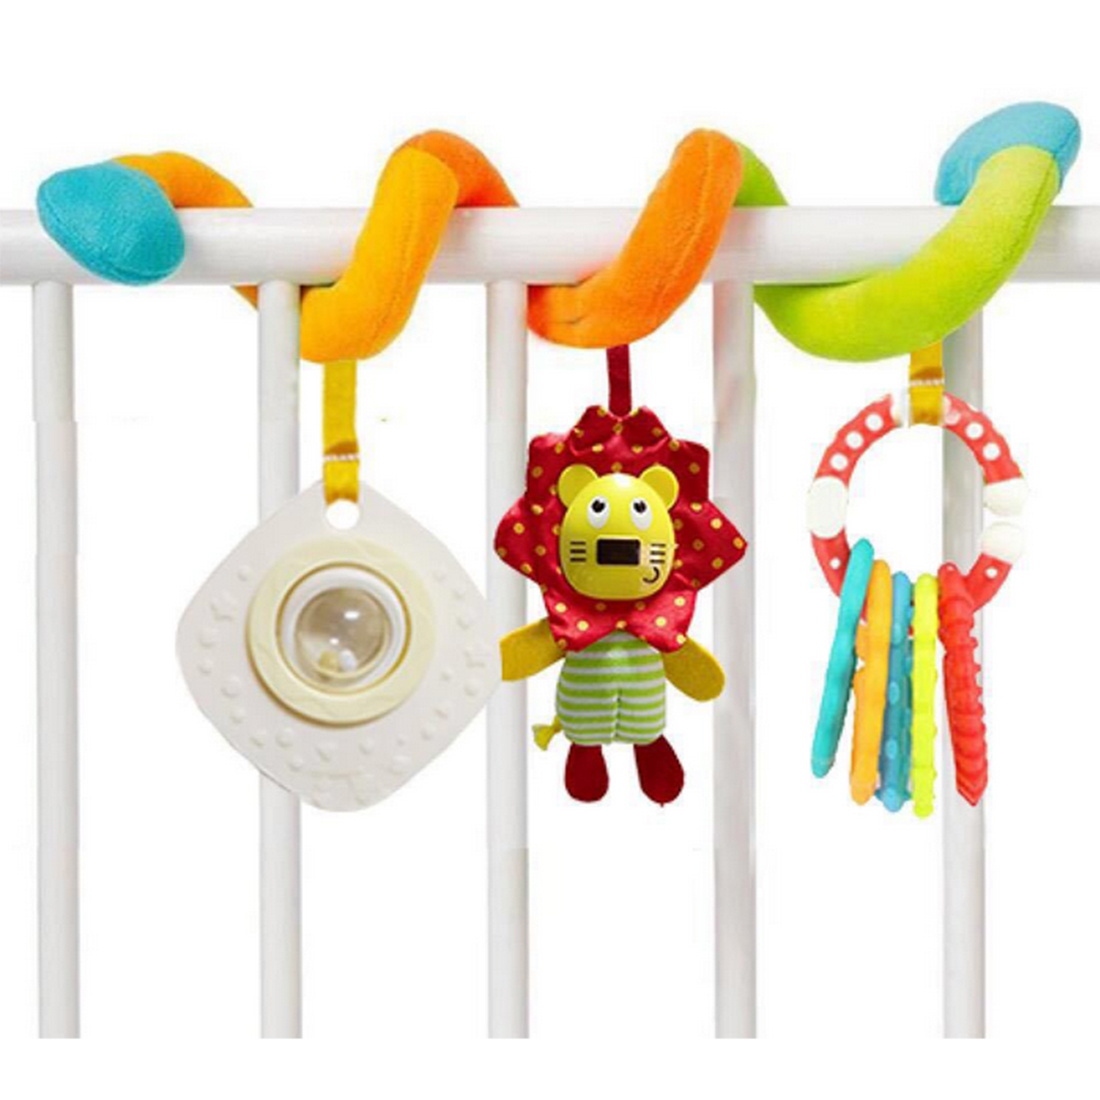 Surwish Cute Infant Spiral Bed Stroller Toy Hanging Bell Crib Rattle Babyplay Baby Toys ...